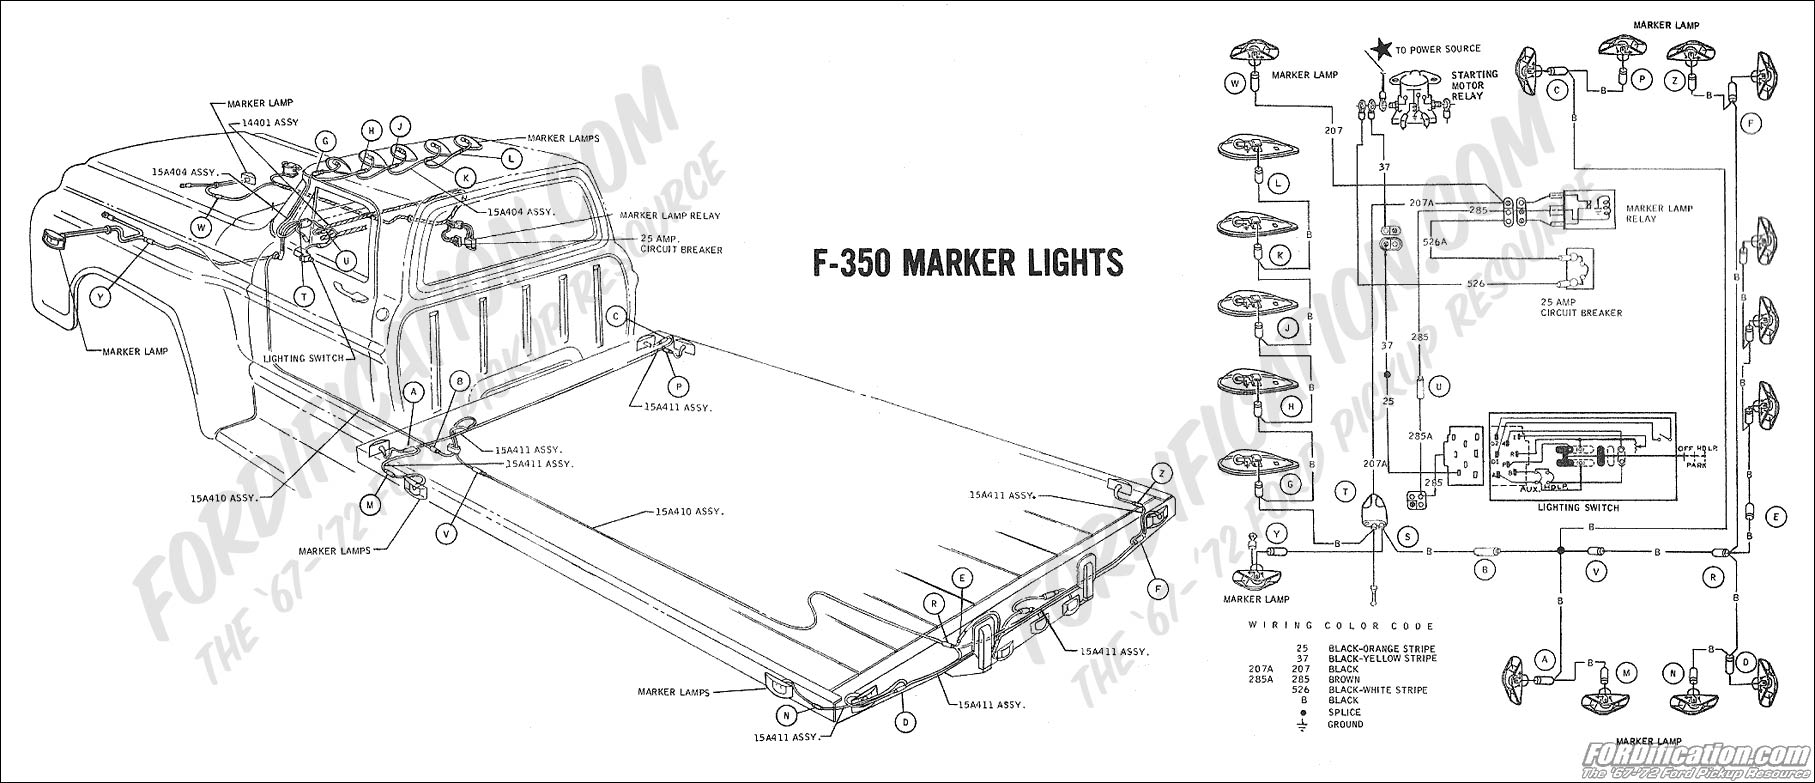 1973 f250 wiring diagram  1973  get free image about